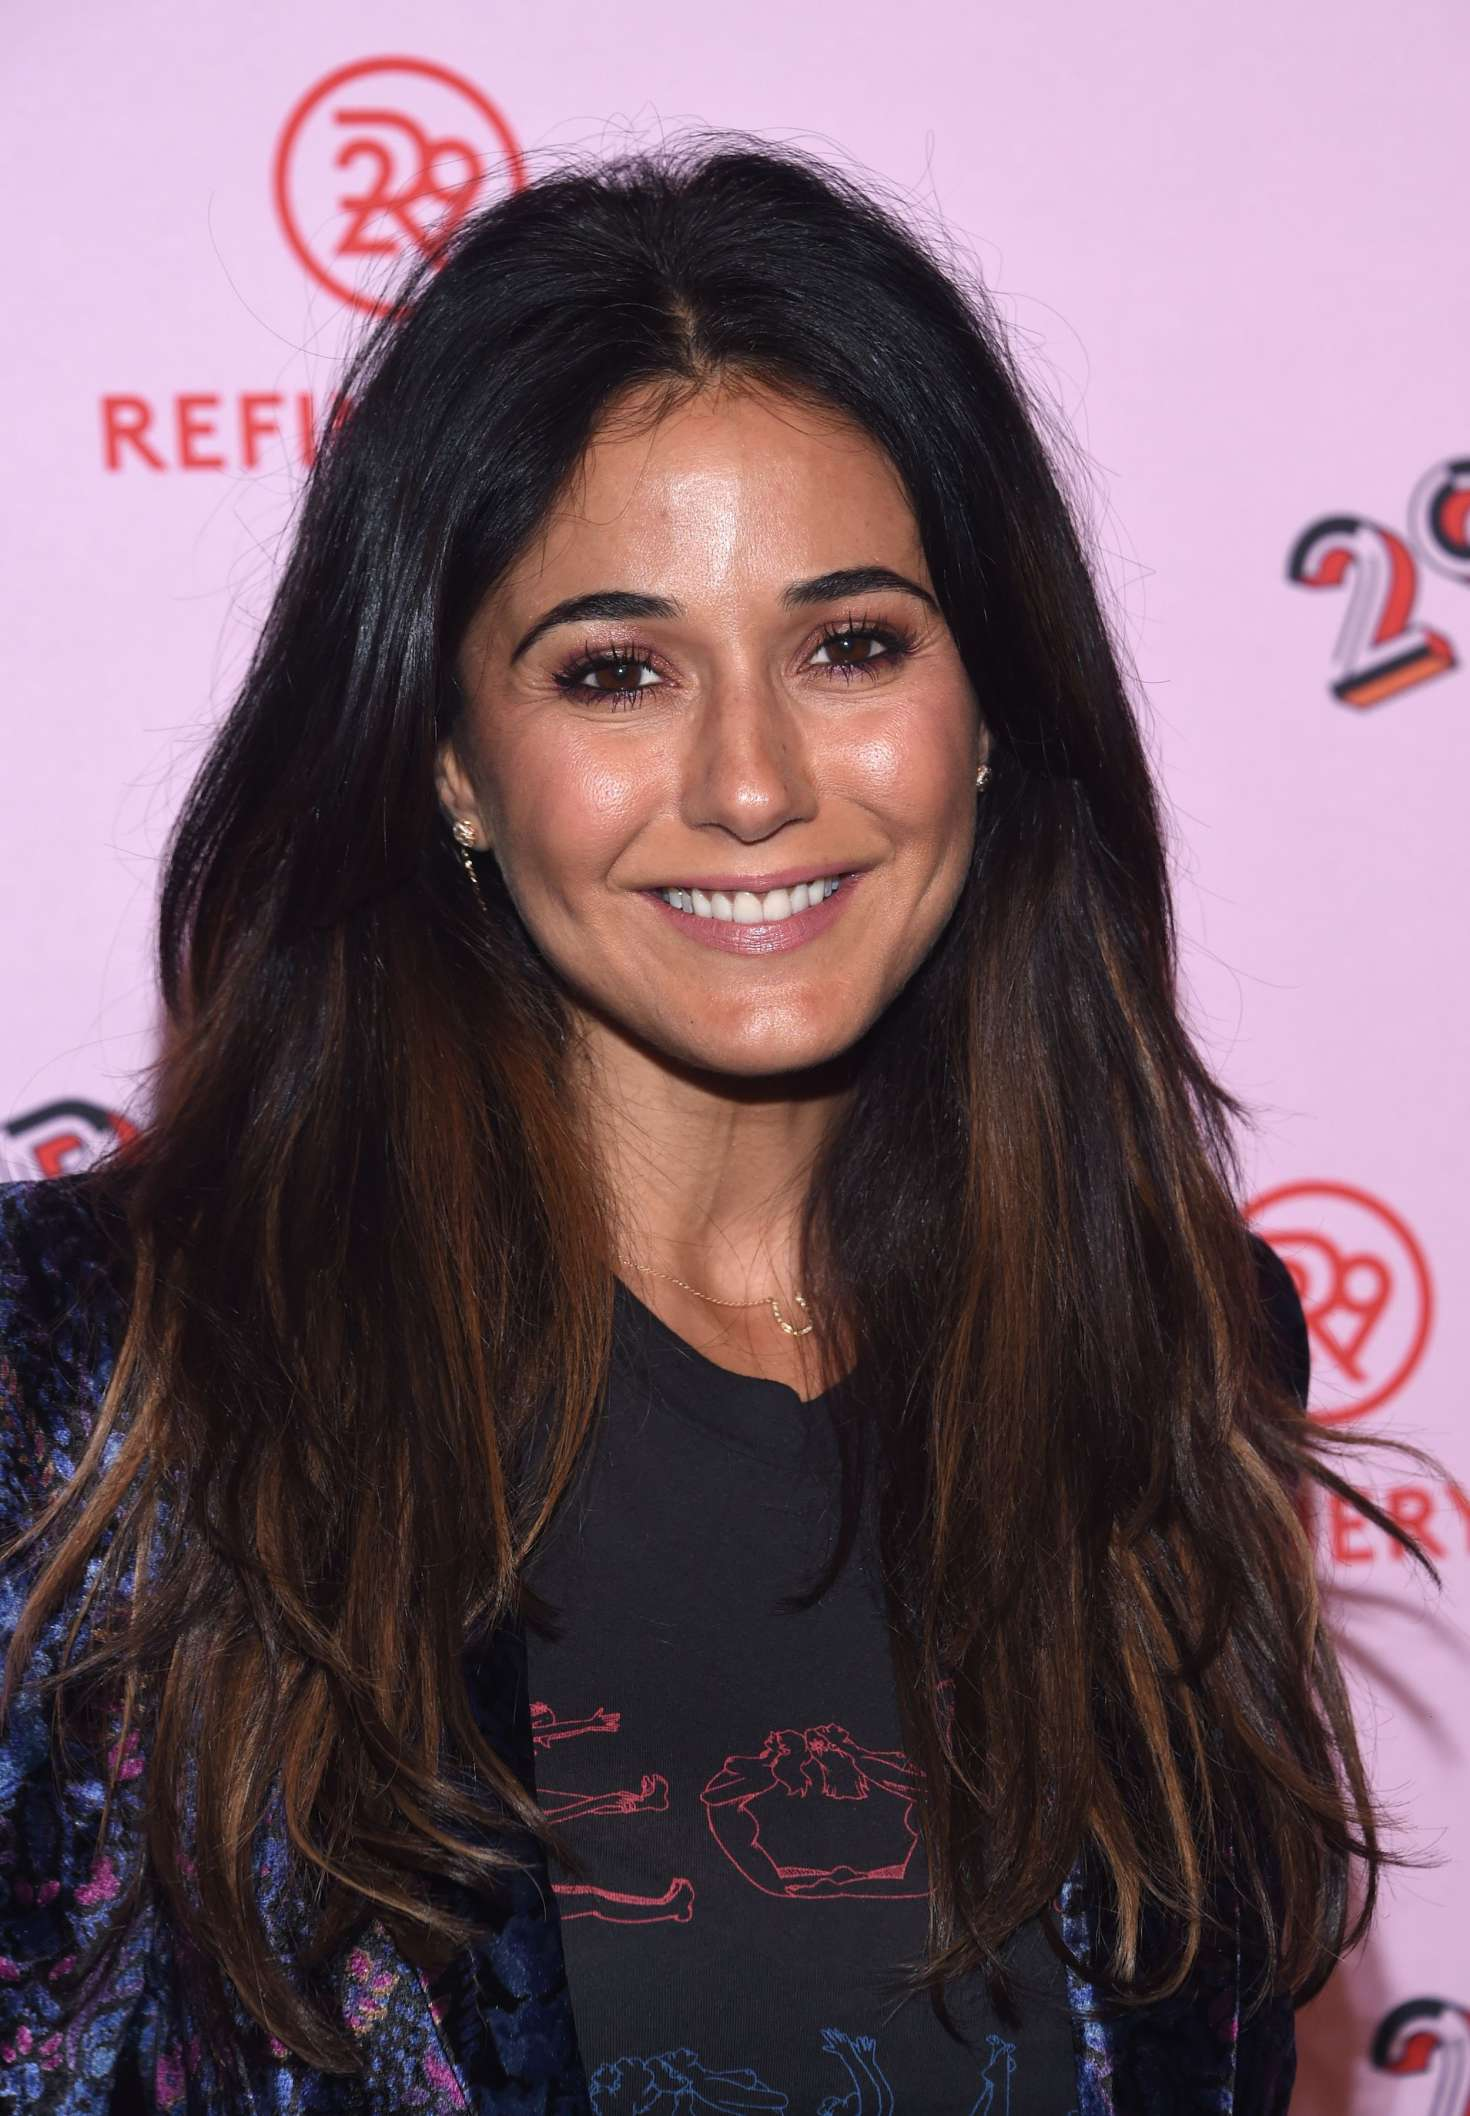 Emmanuelle Chriqui - Refinery29 29Rooms Los Angeles: Turn It Into Art Opening Party in LA